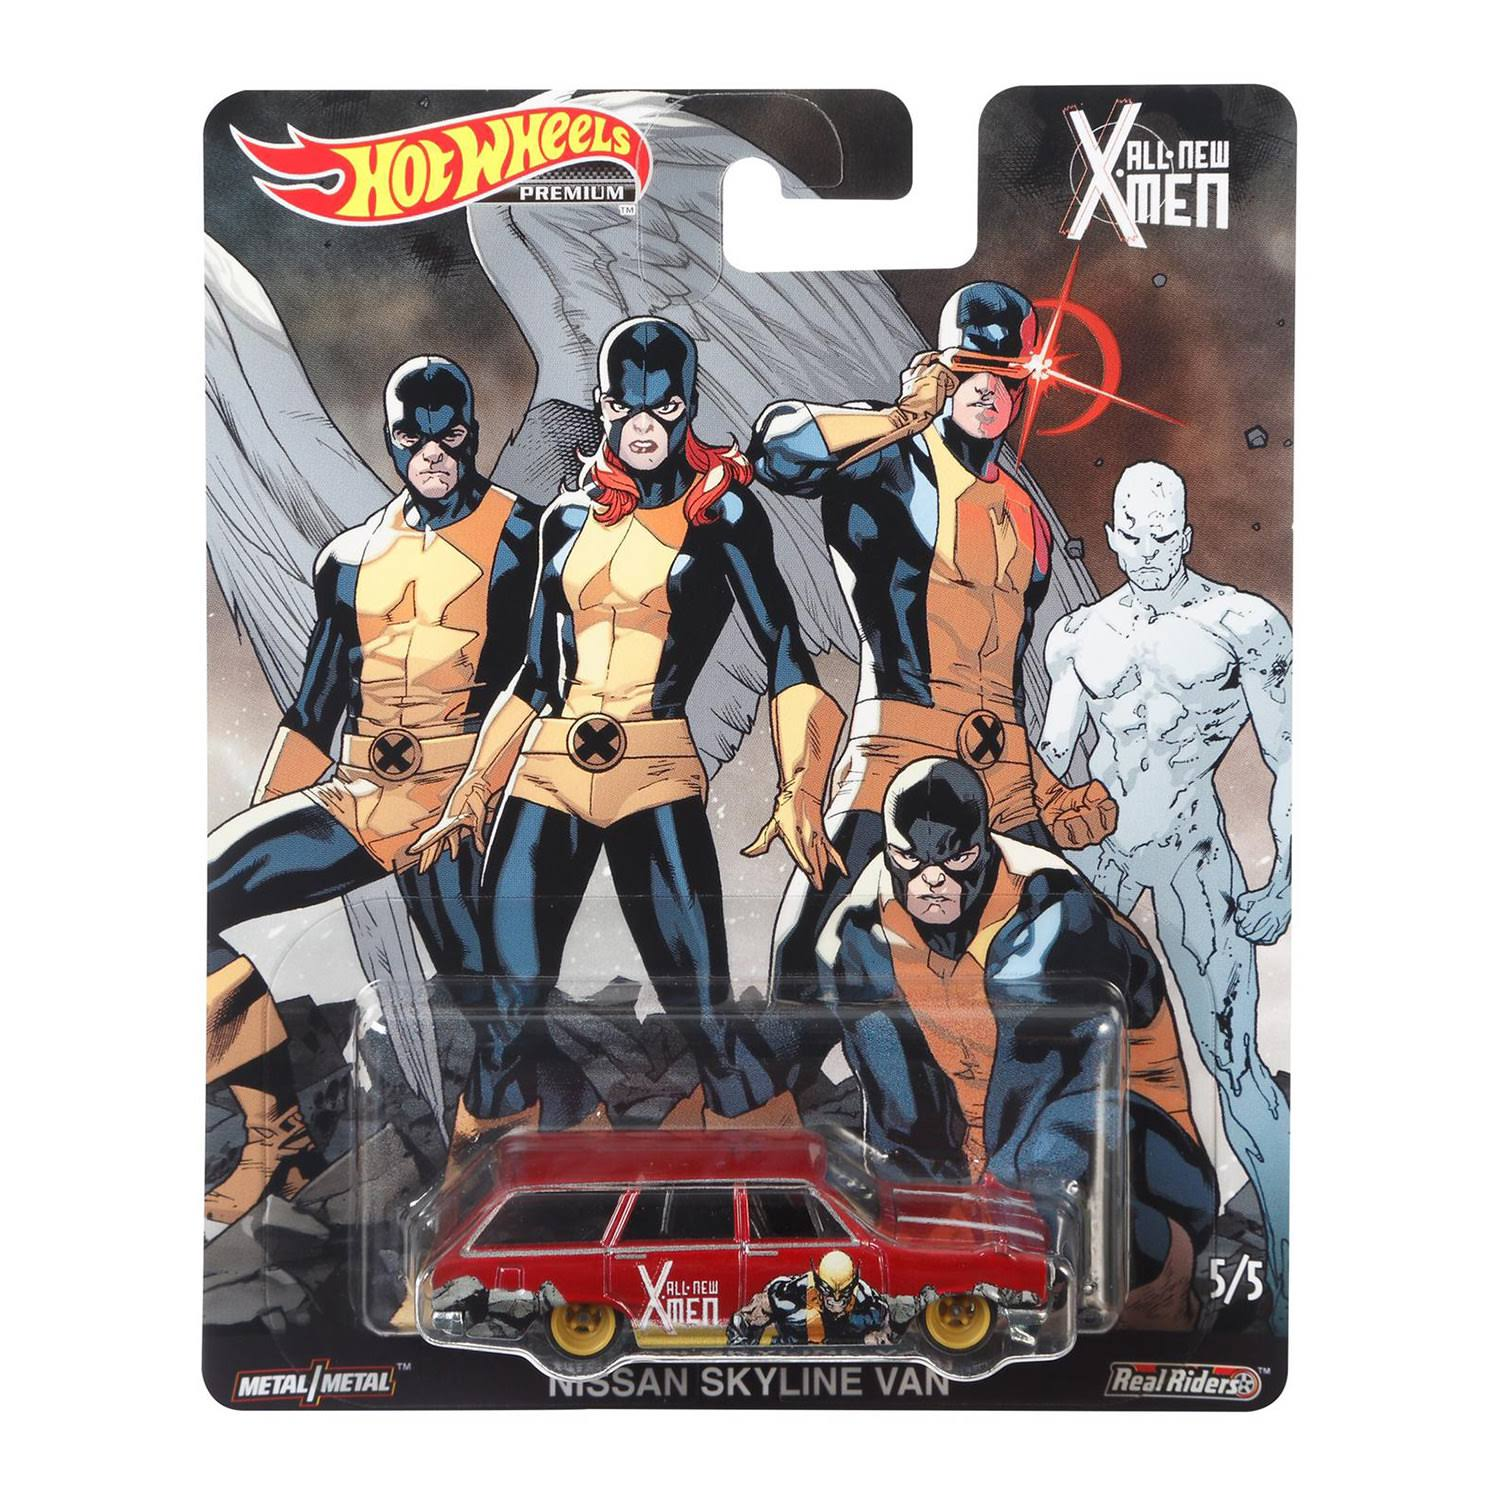 Hot Wheels Premium Toy, Car, All New X-Men, Nissan Skyline Van